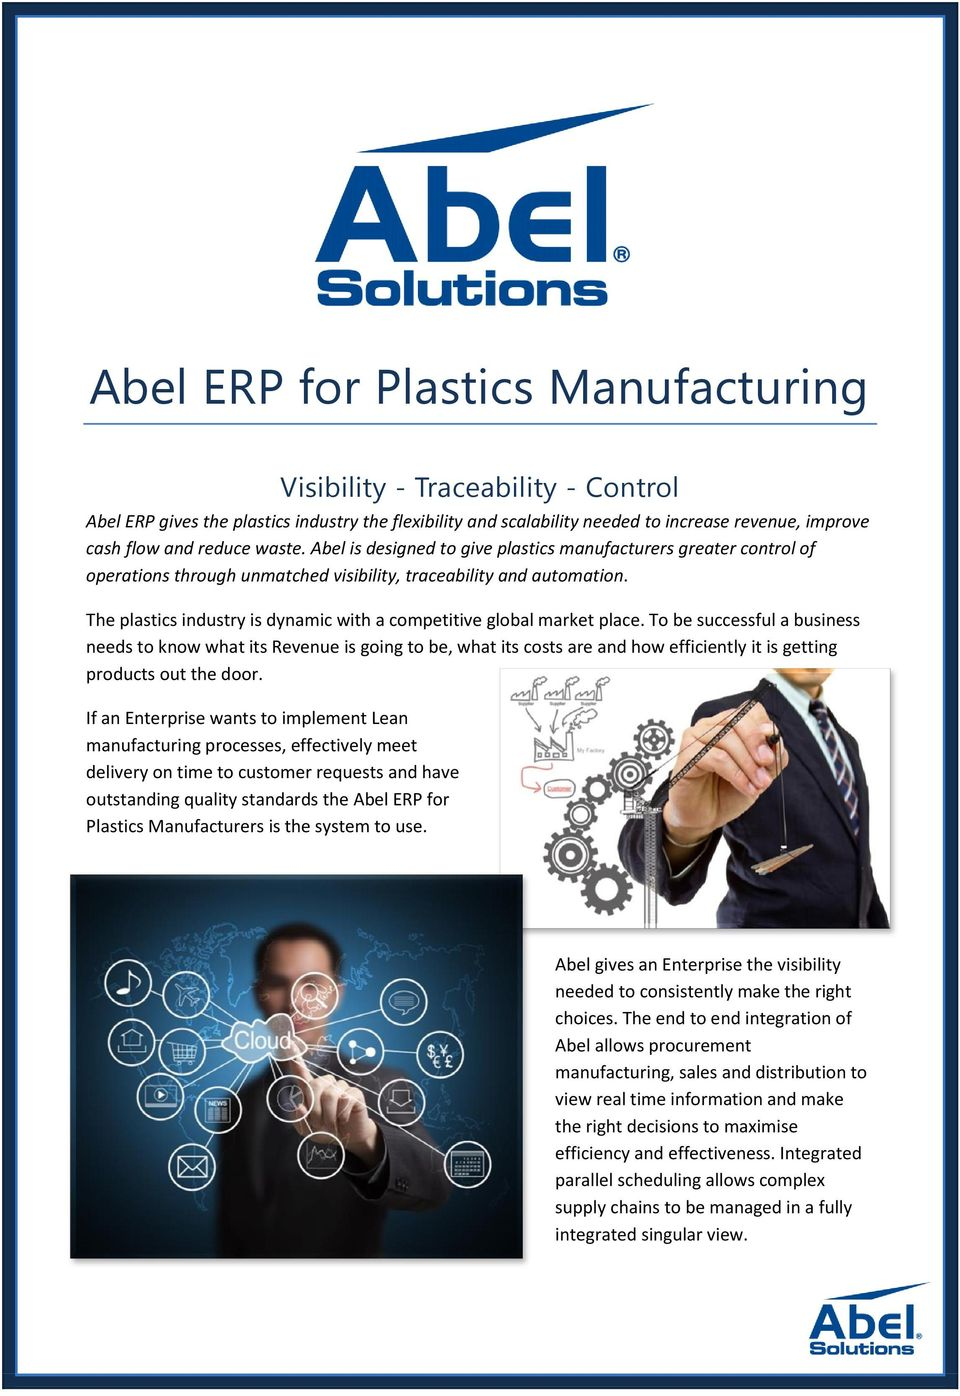 The plastics industry is dynamic with a competitive global market place.